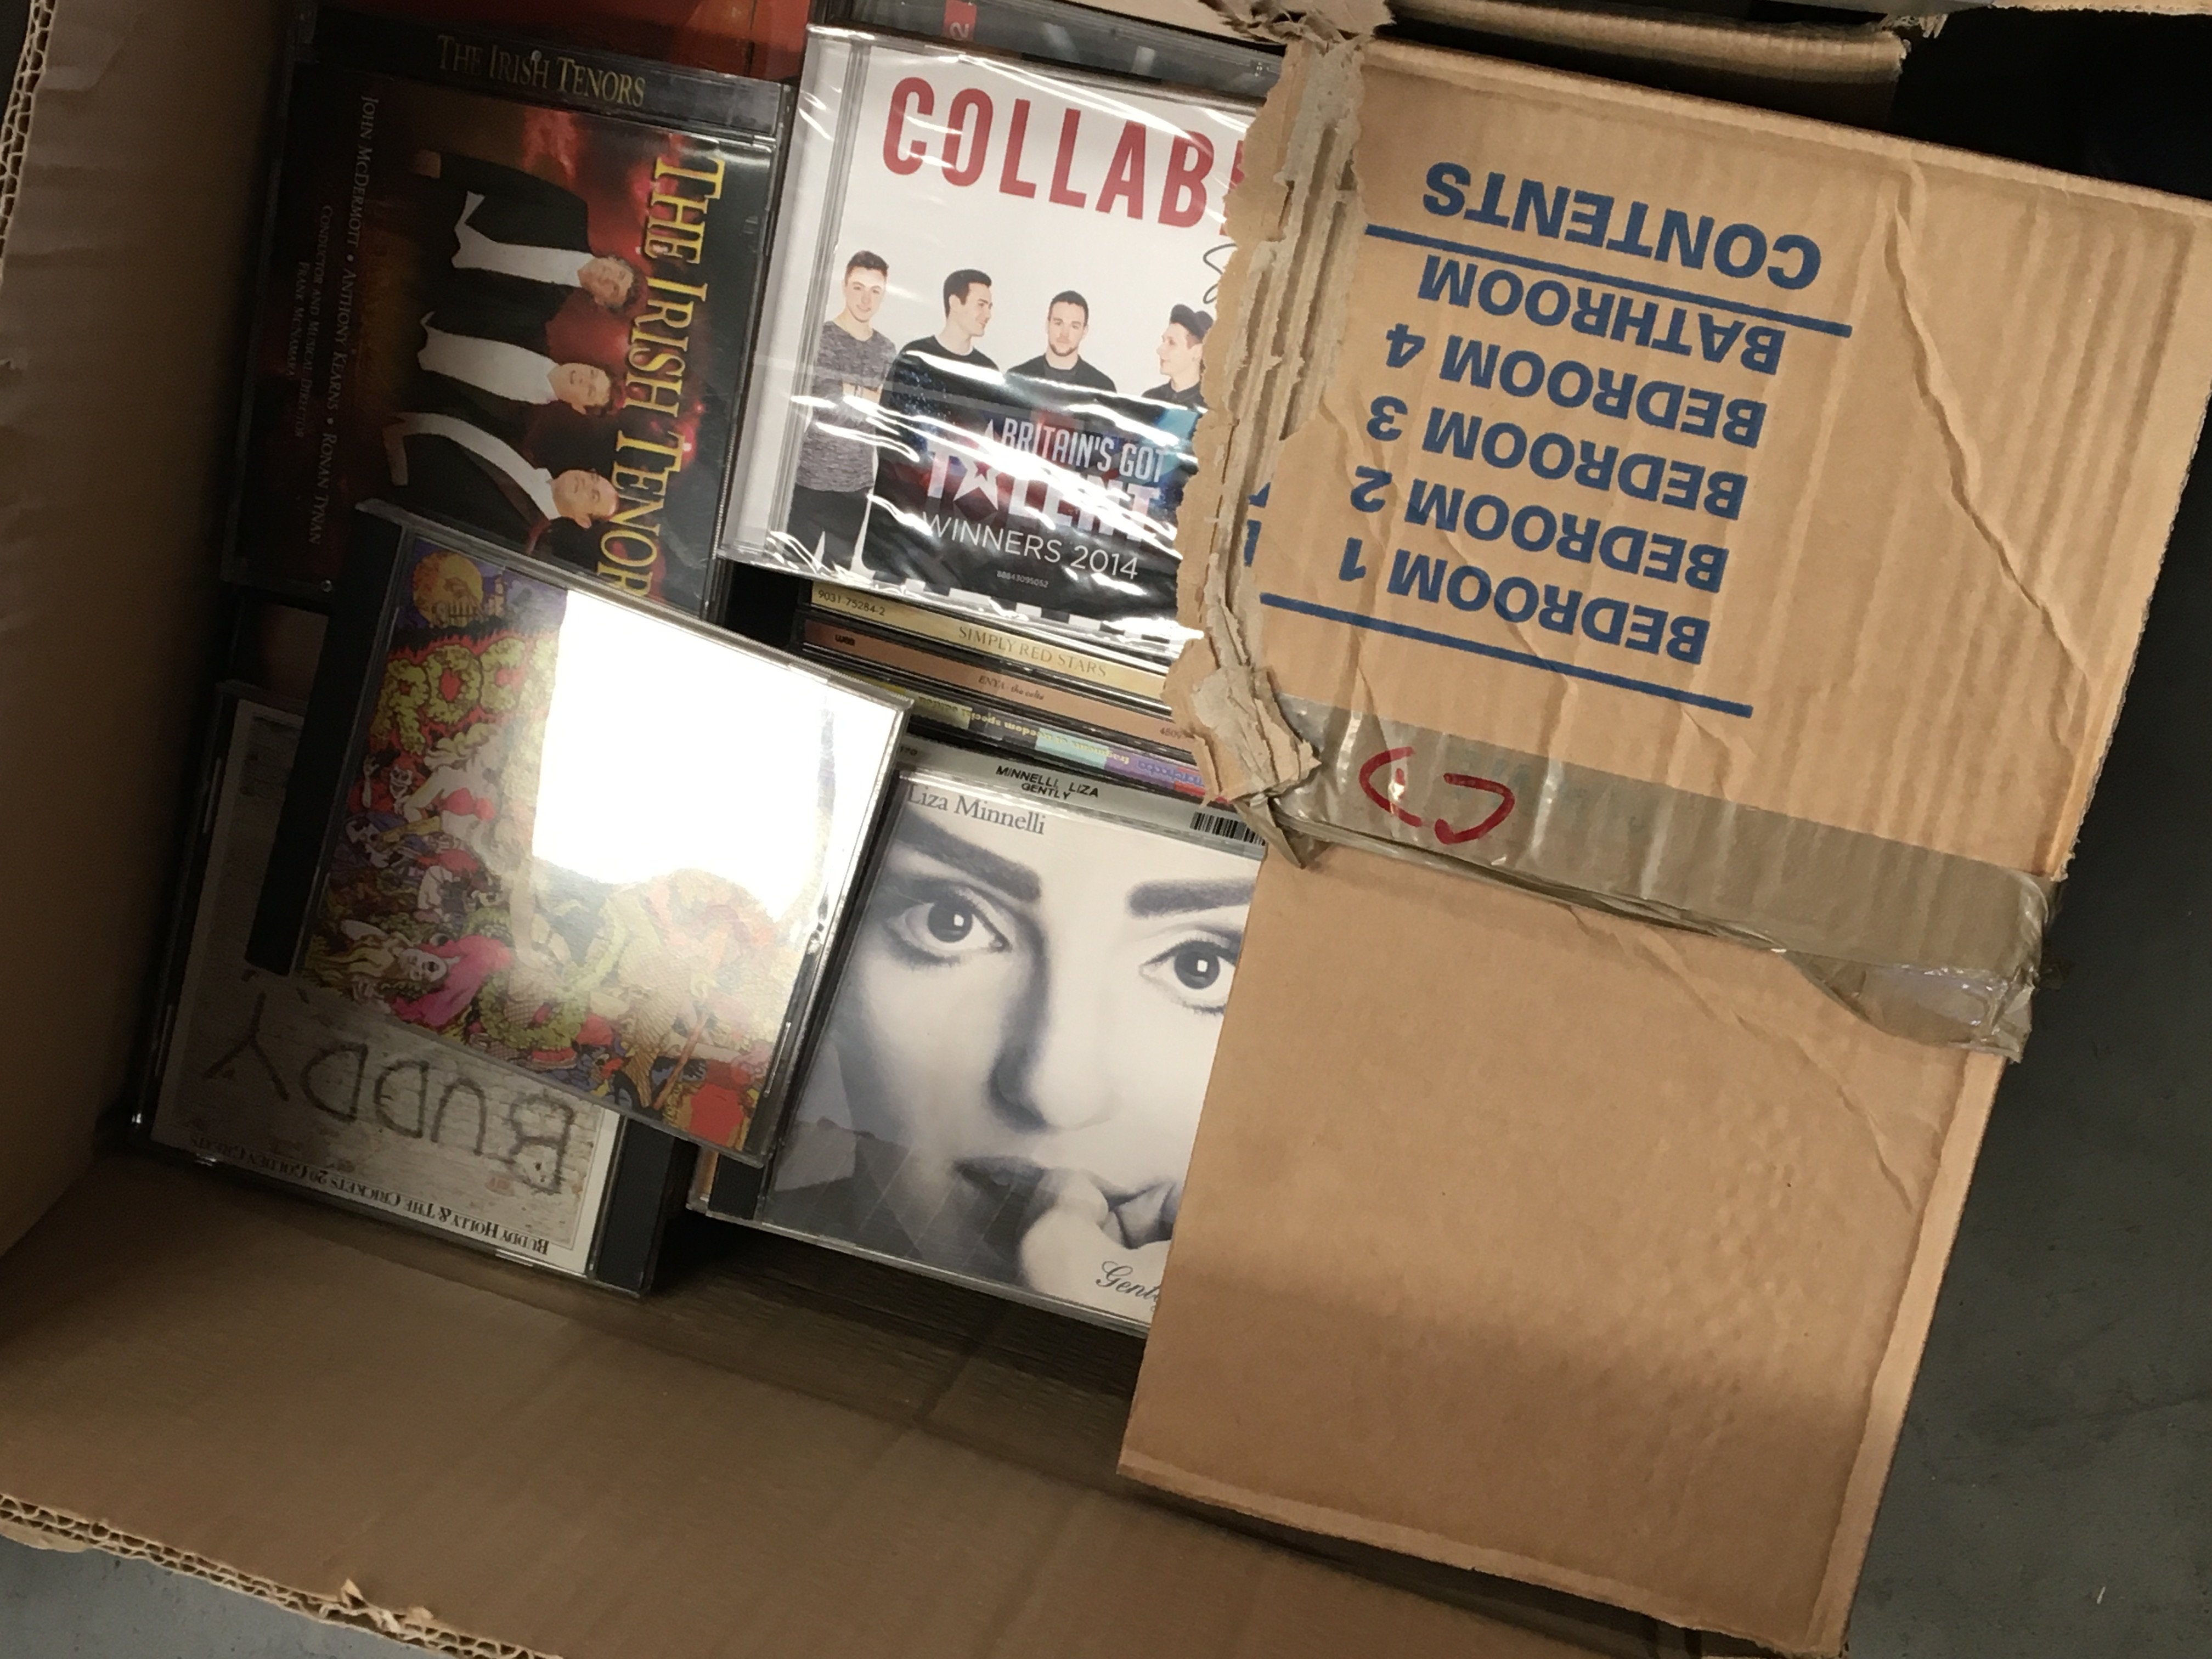 Three boxes containing vintage computer games including a PS1 and other Intendo wii and music CDs - Image 3 of 3